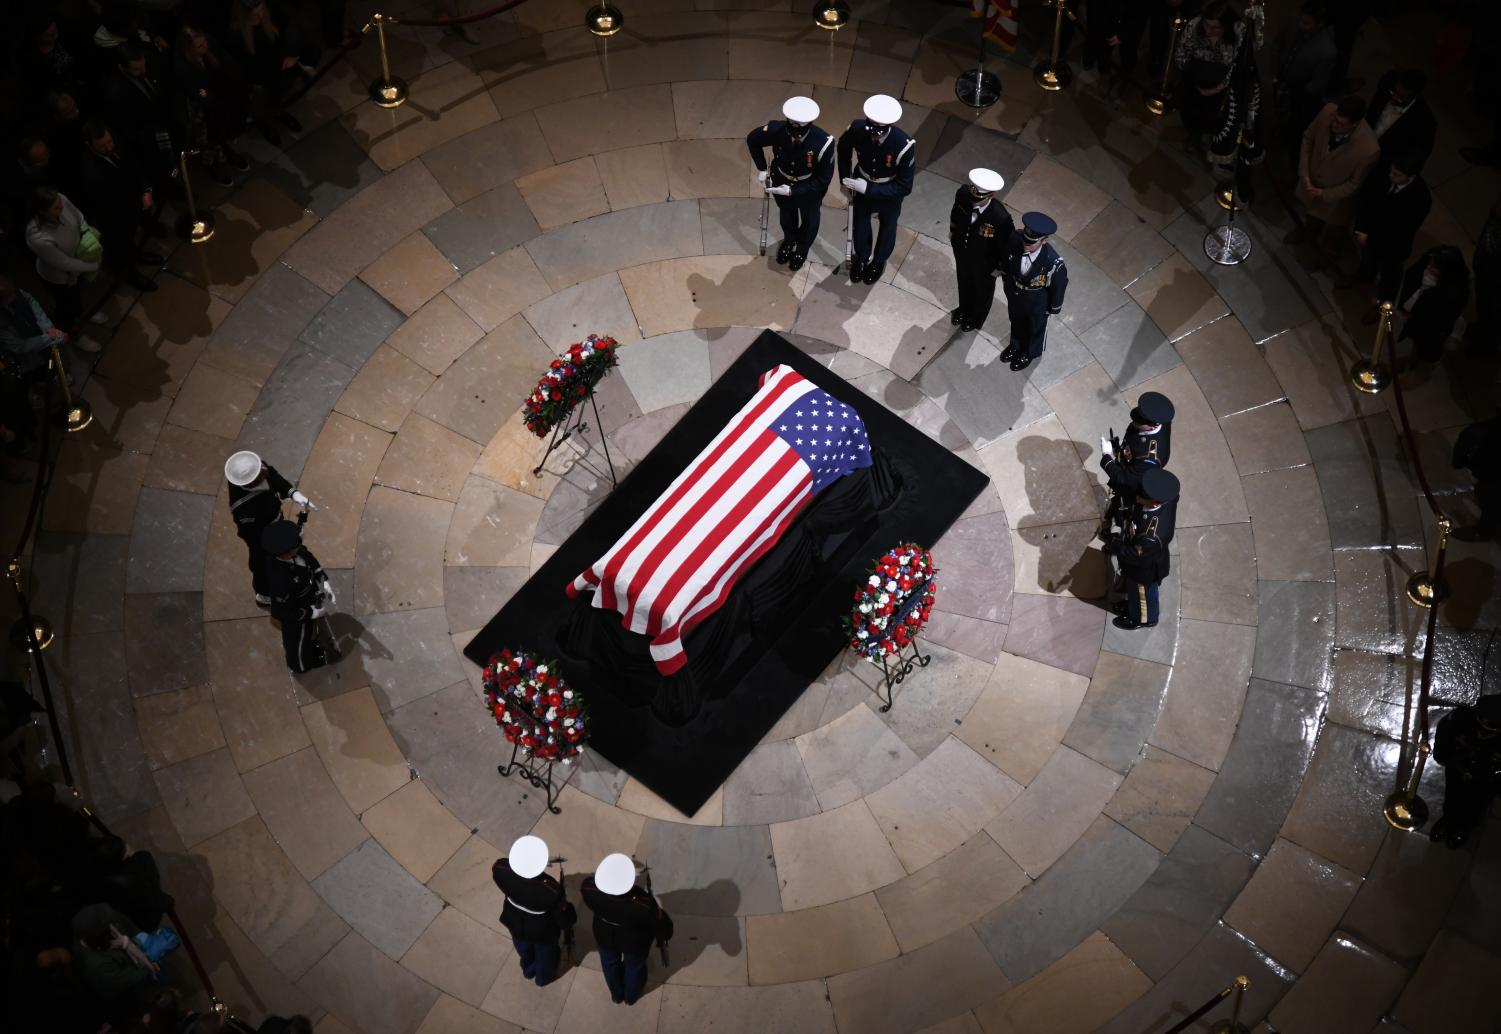 Joint services military honor guards stand next to the flag-draped casket of former U.S. President George H.W. Bush on the Lincoln catafalque during a memorial service at the Capitol Rotunda on Dec. 3, 2018 in Washington, D.C. (Olivier Douliery/Abaca Press/TNS)